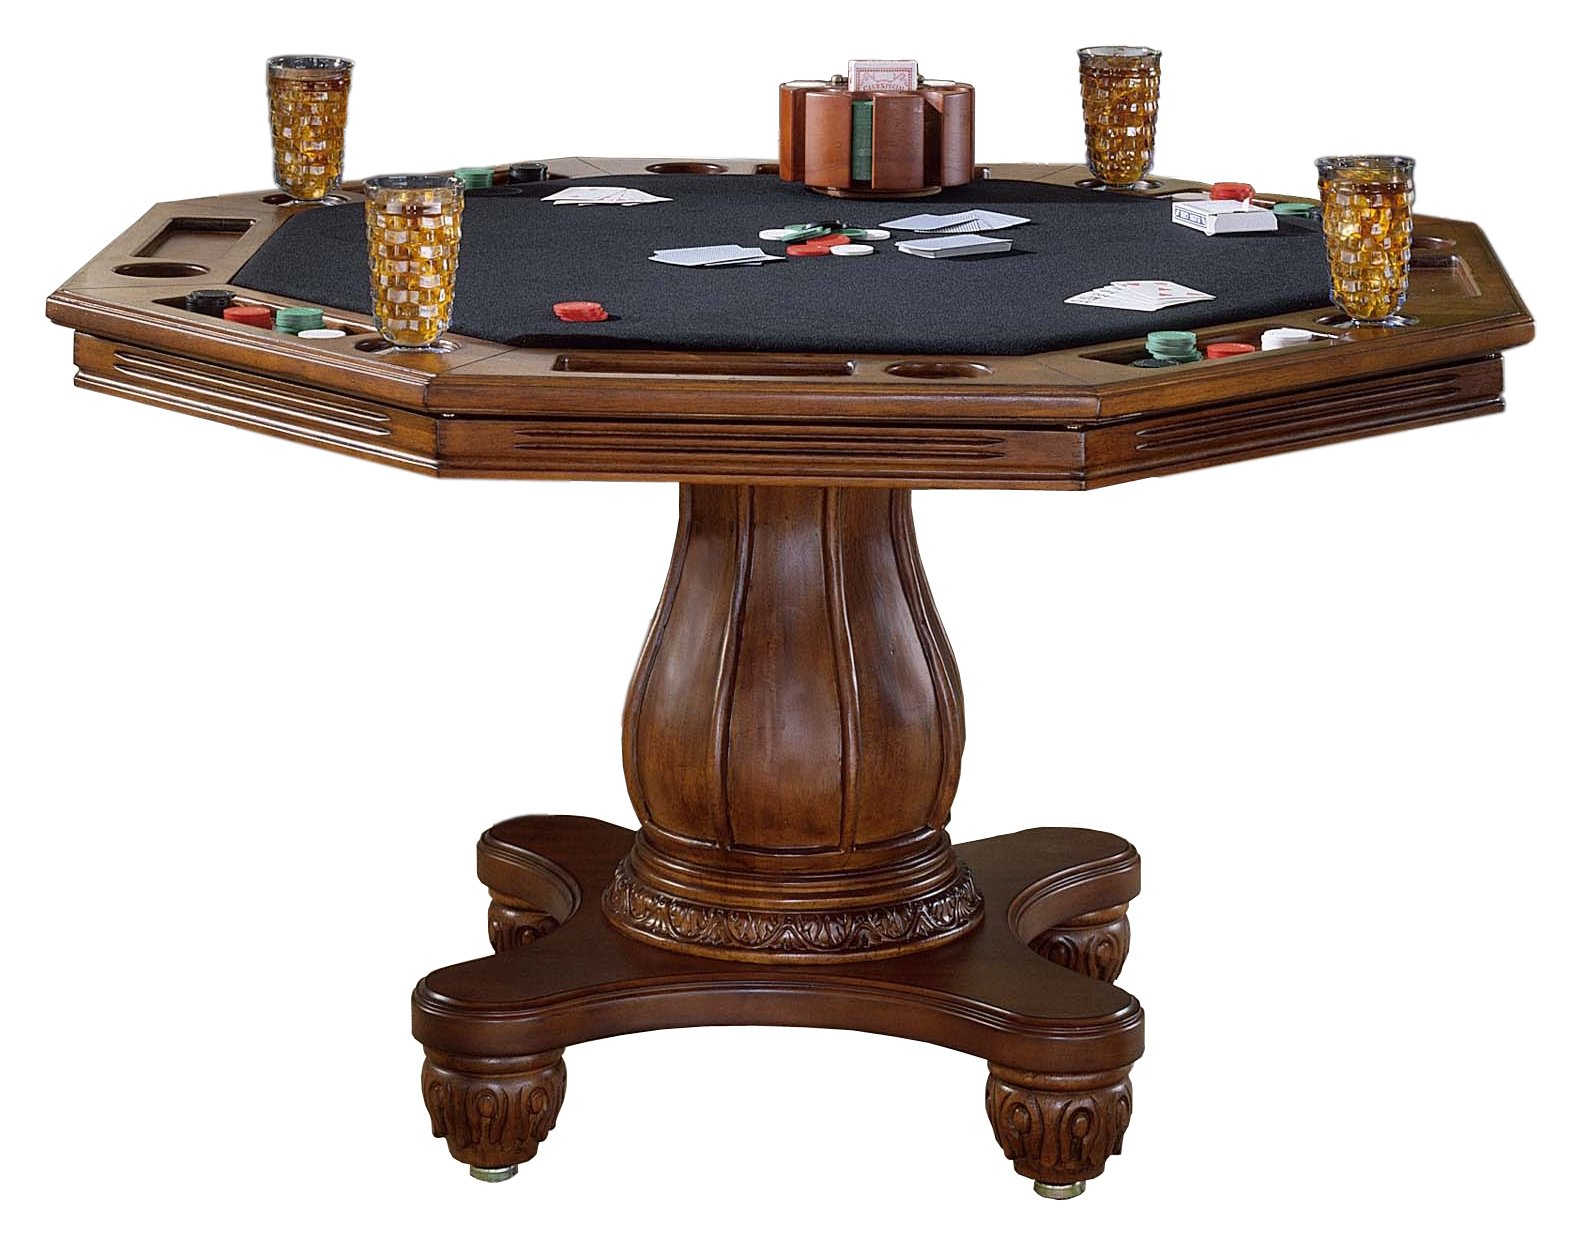 Hillsdale Furniture Hillsdale Kingston Game Table, Medium Cherry by Hillsdale Furniture